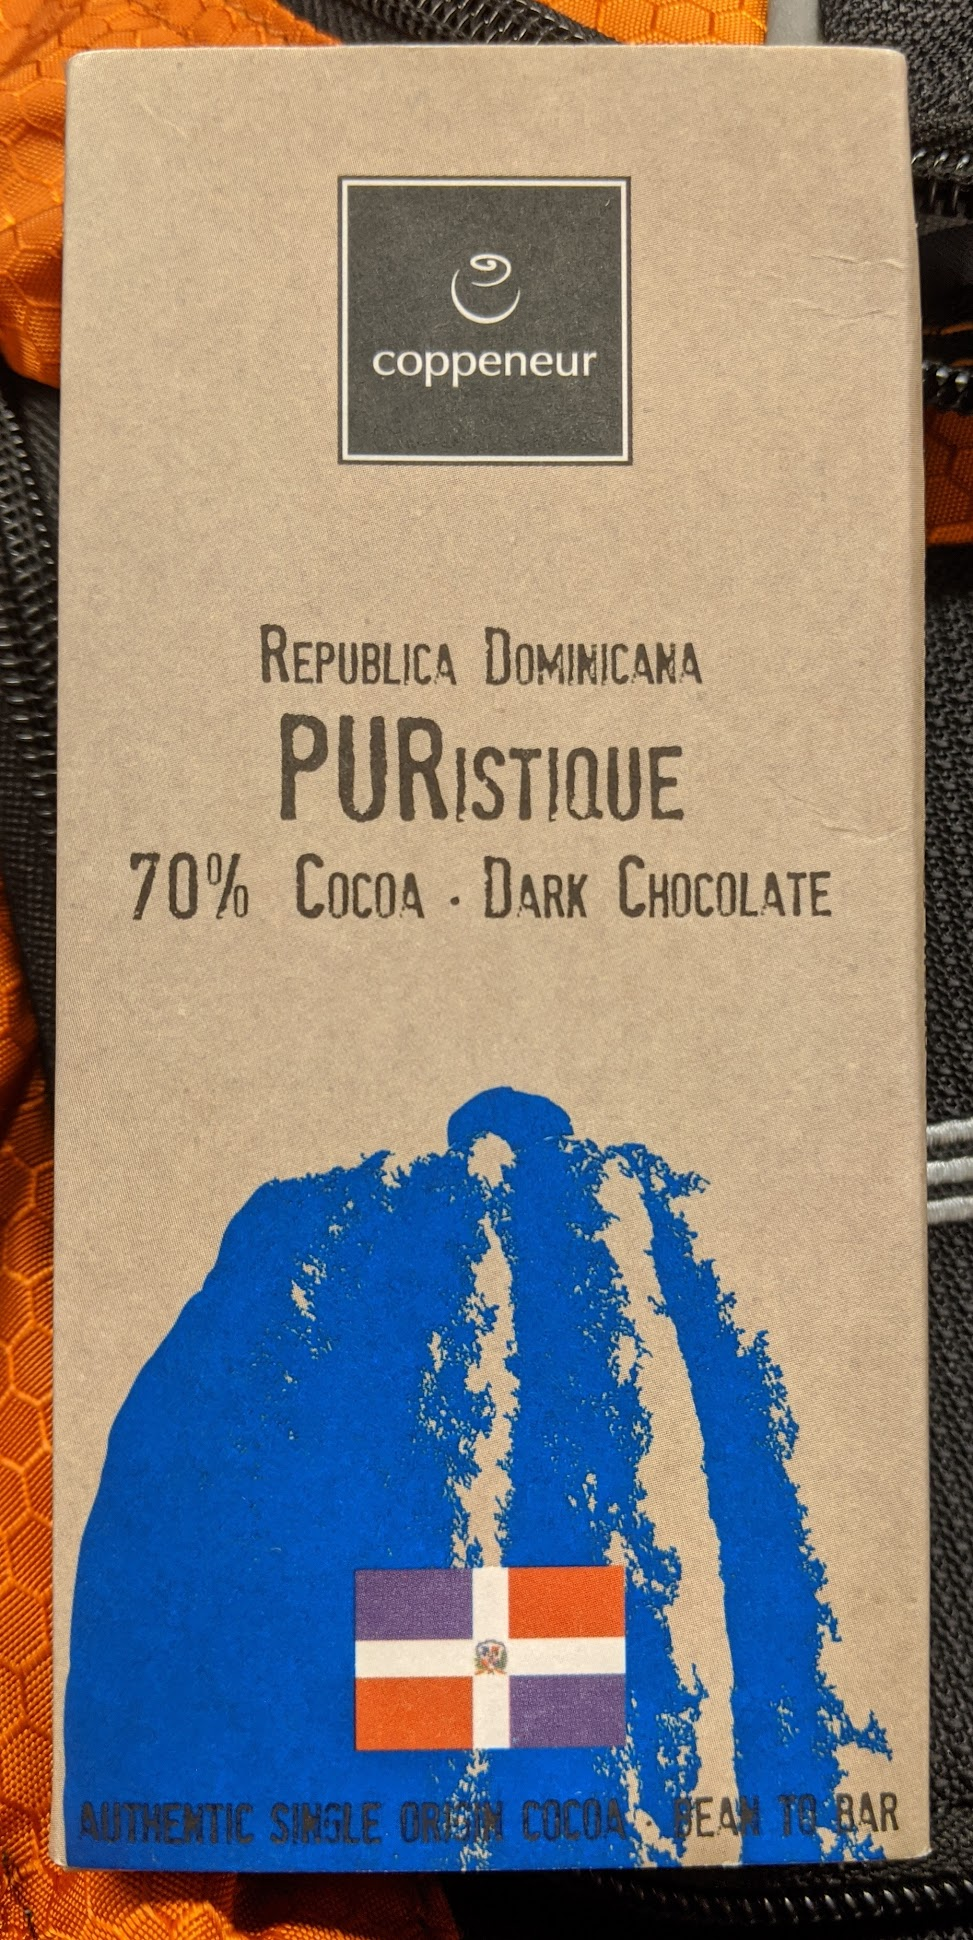 70% coppeneur puristique bar